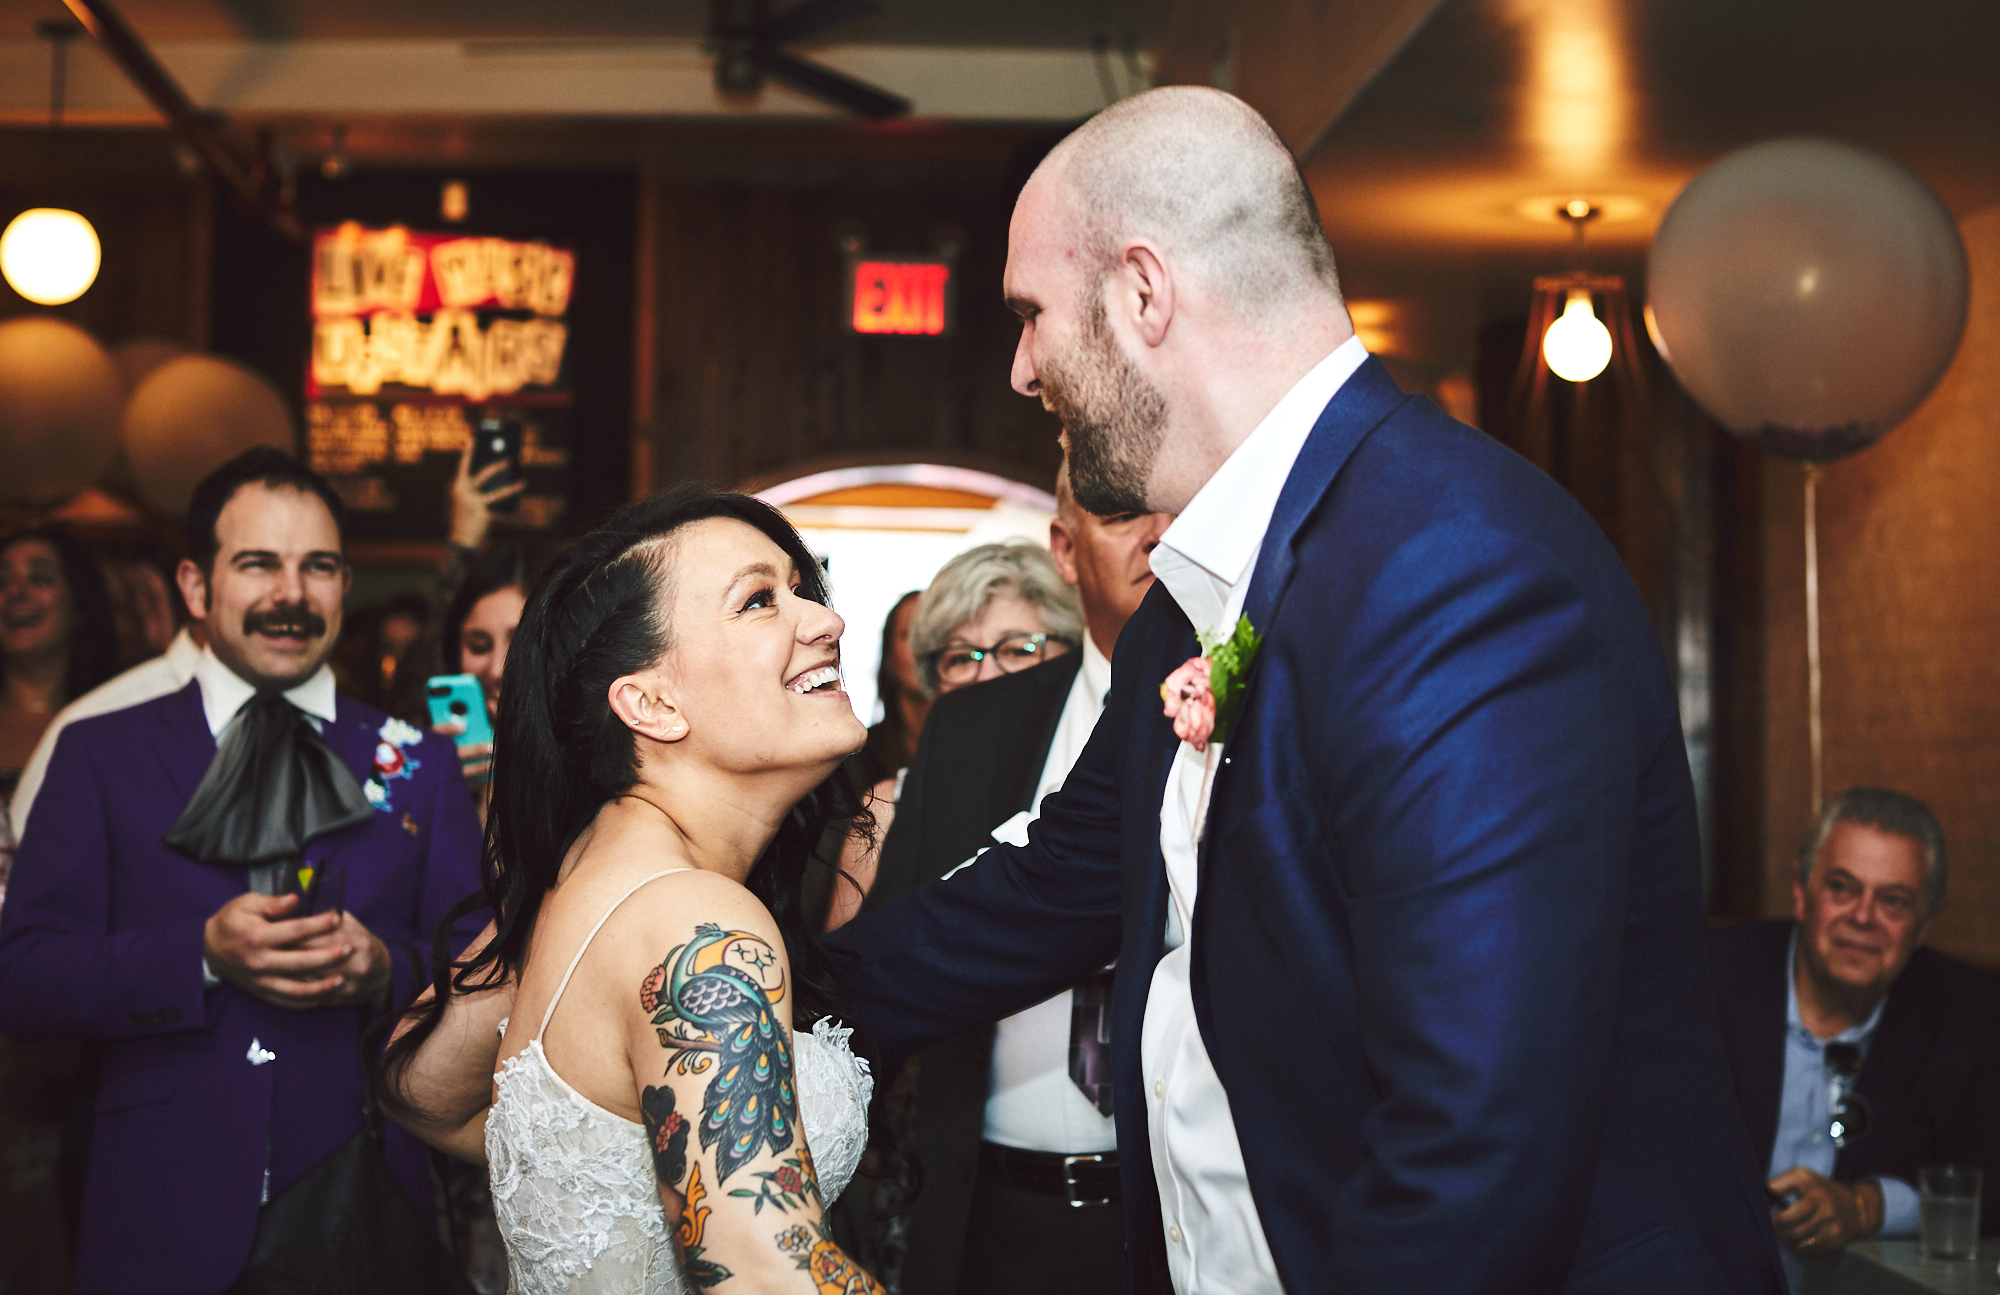 190518_SpringThreesBreweryWedding_By_BriJohnsonWeddings_0112.jpg